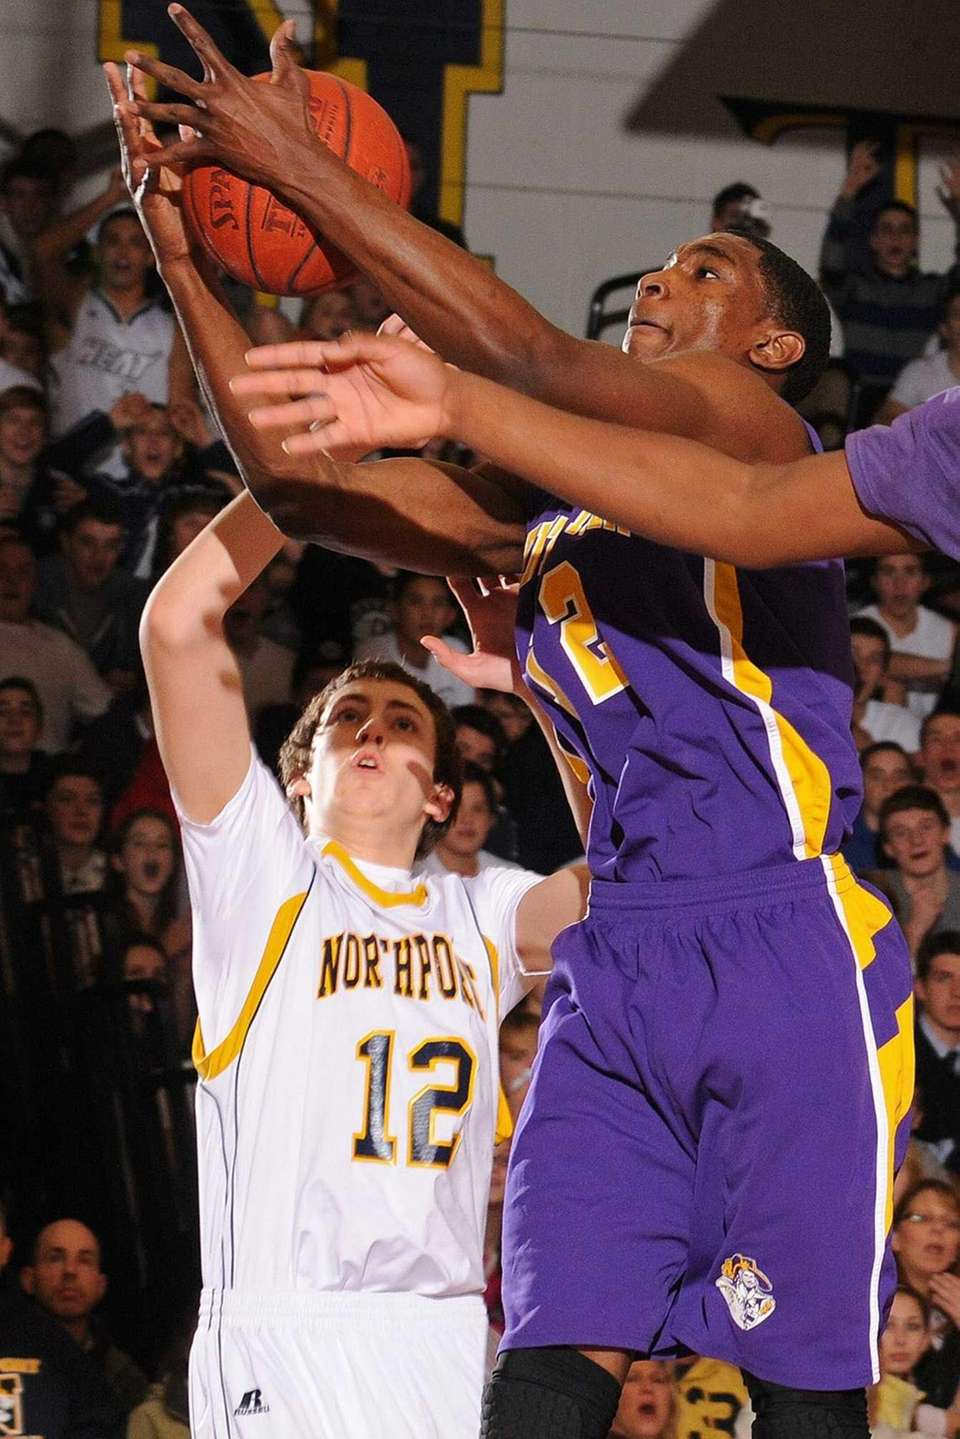 Central Islip's Timothy McKenzie, right, grabs a rebound